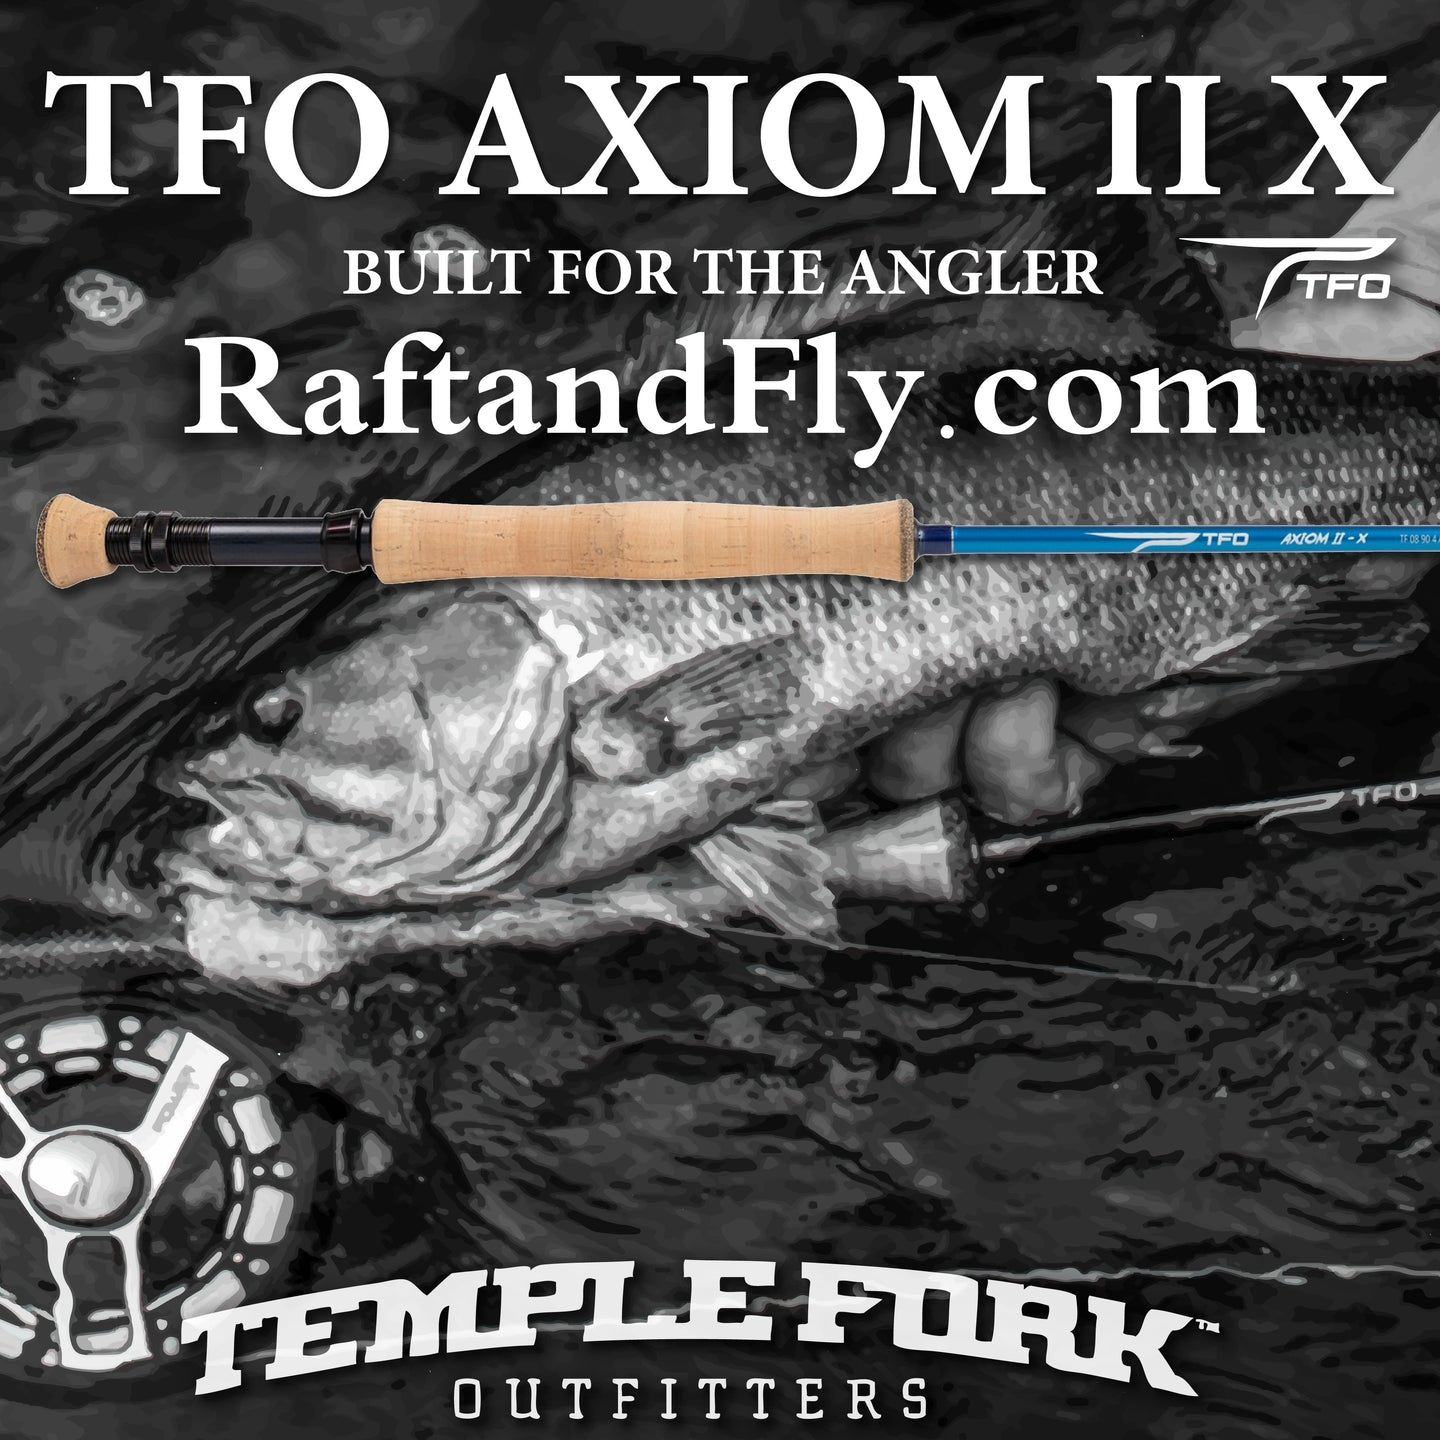 TFO Axiom II X 5wt sale